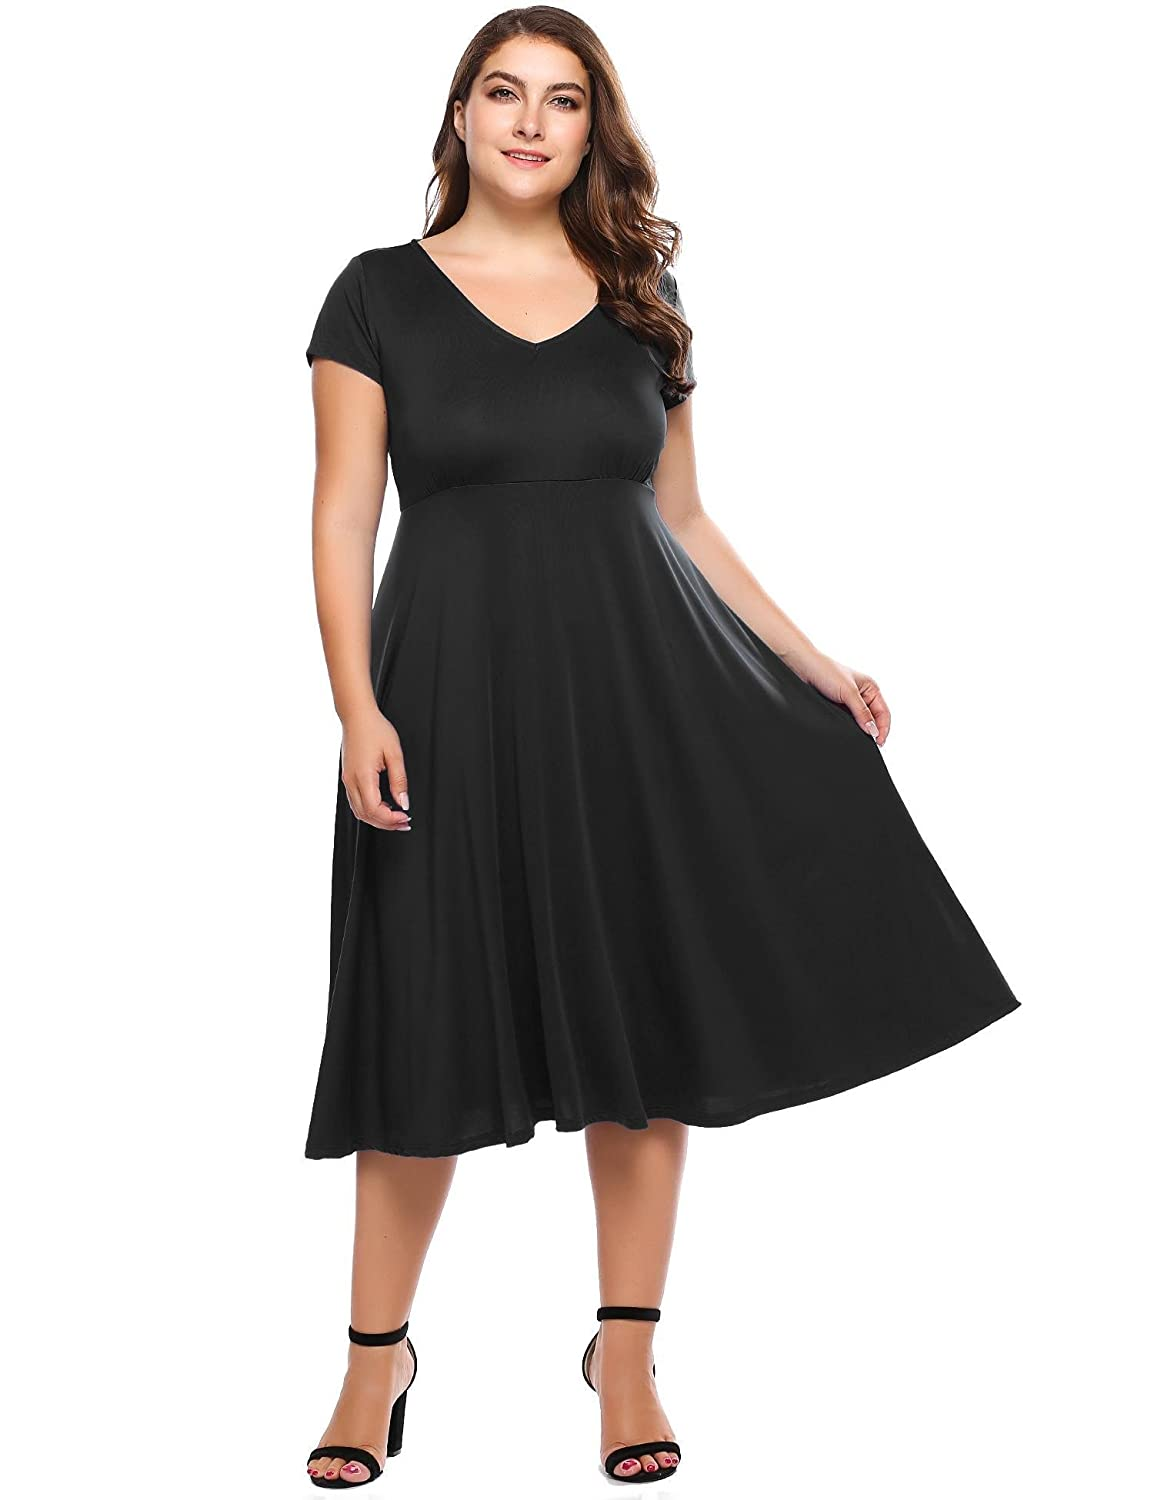 1722e4bea3a Womens Plus Size Short Sleeves V-Neck Fit and Flare Maxi Party Dress -  Involand Ladies Long Pleated Swing Sundress at Amazon Women s Clothing  store